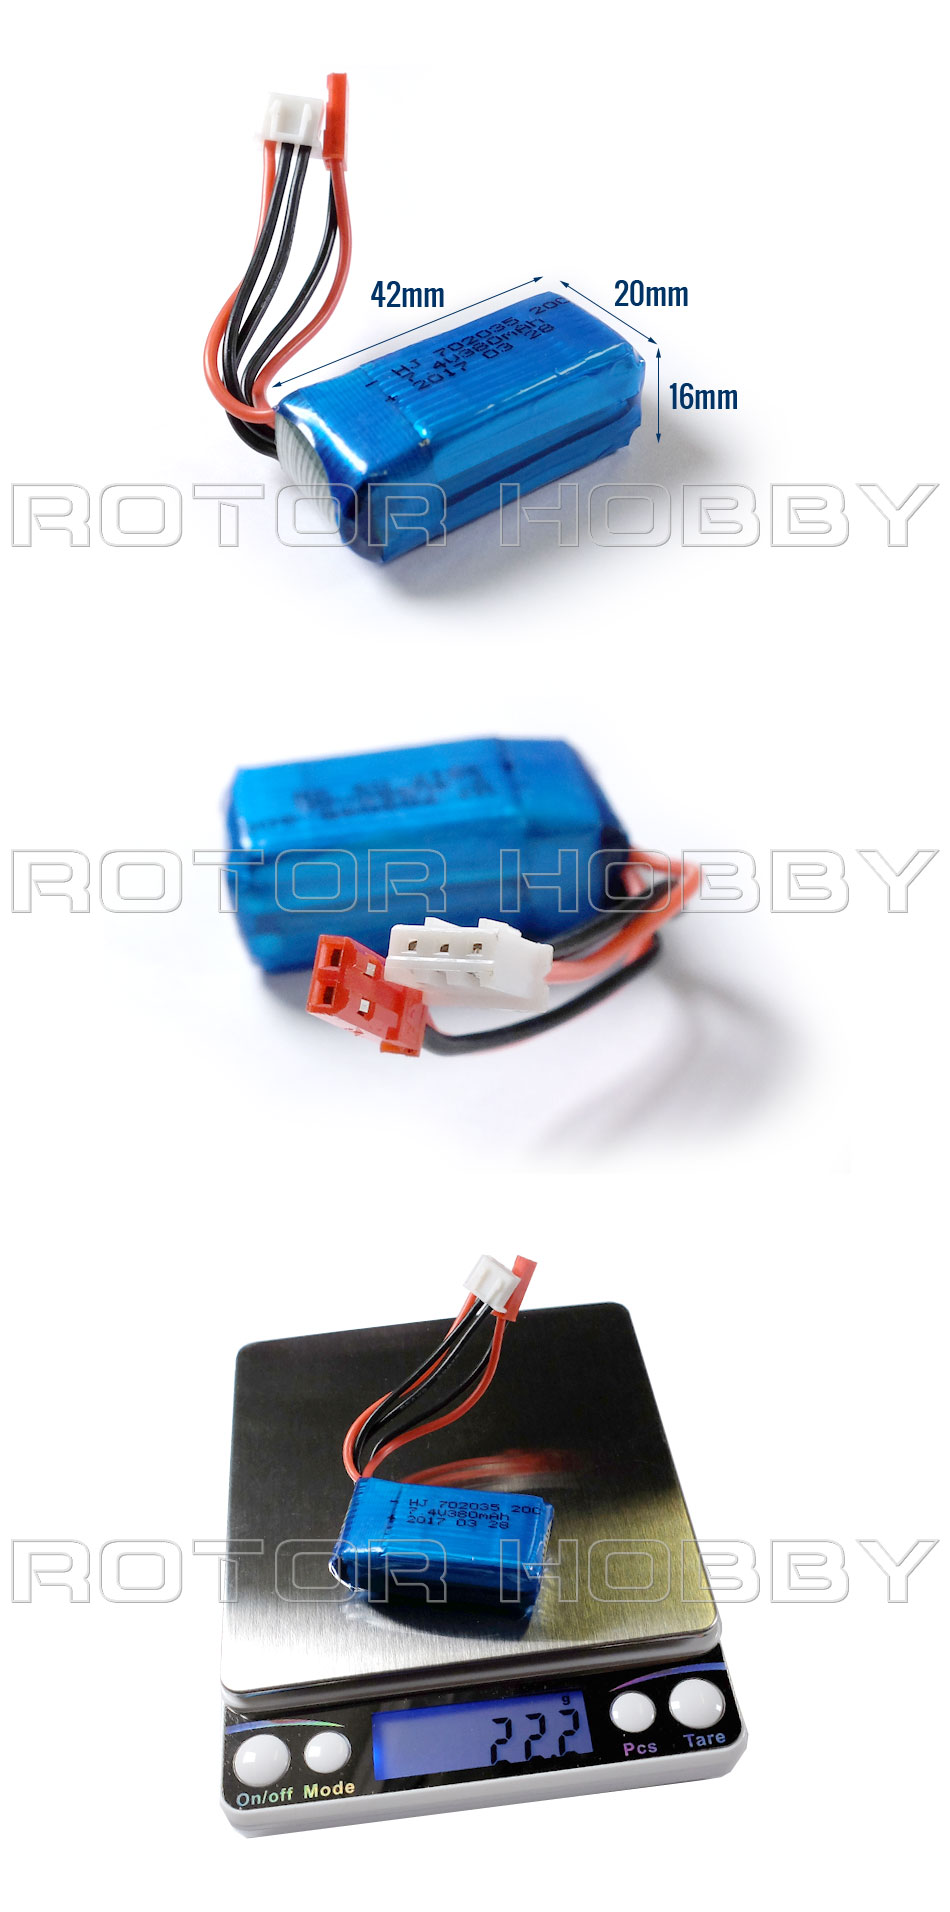 7.4V 380mAh LiPo Battery with JST connector